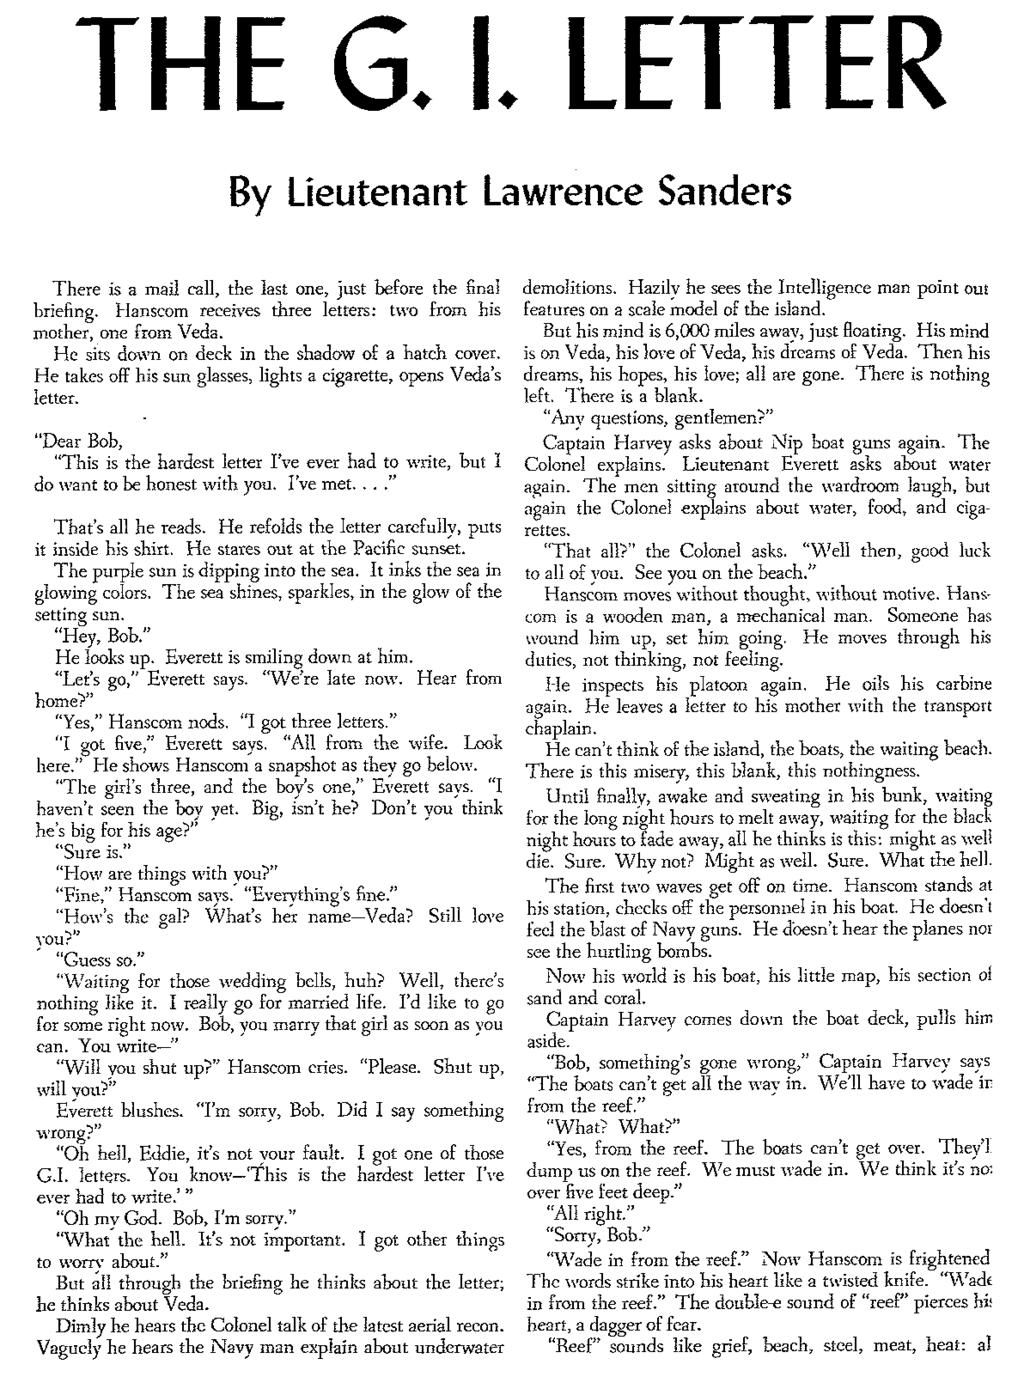 THE G.. letter By lieutenant lawrence Sanders There is a mail call, the last one, just before the final briefing. Hanscom receives three letters: two from his mother, one from Veda.